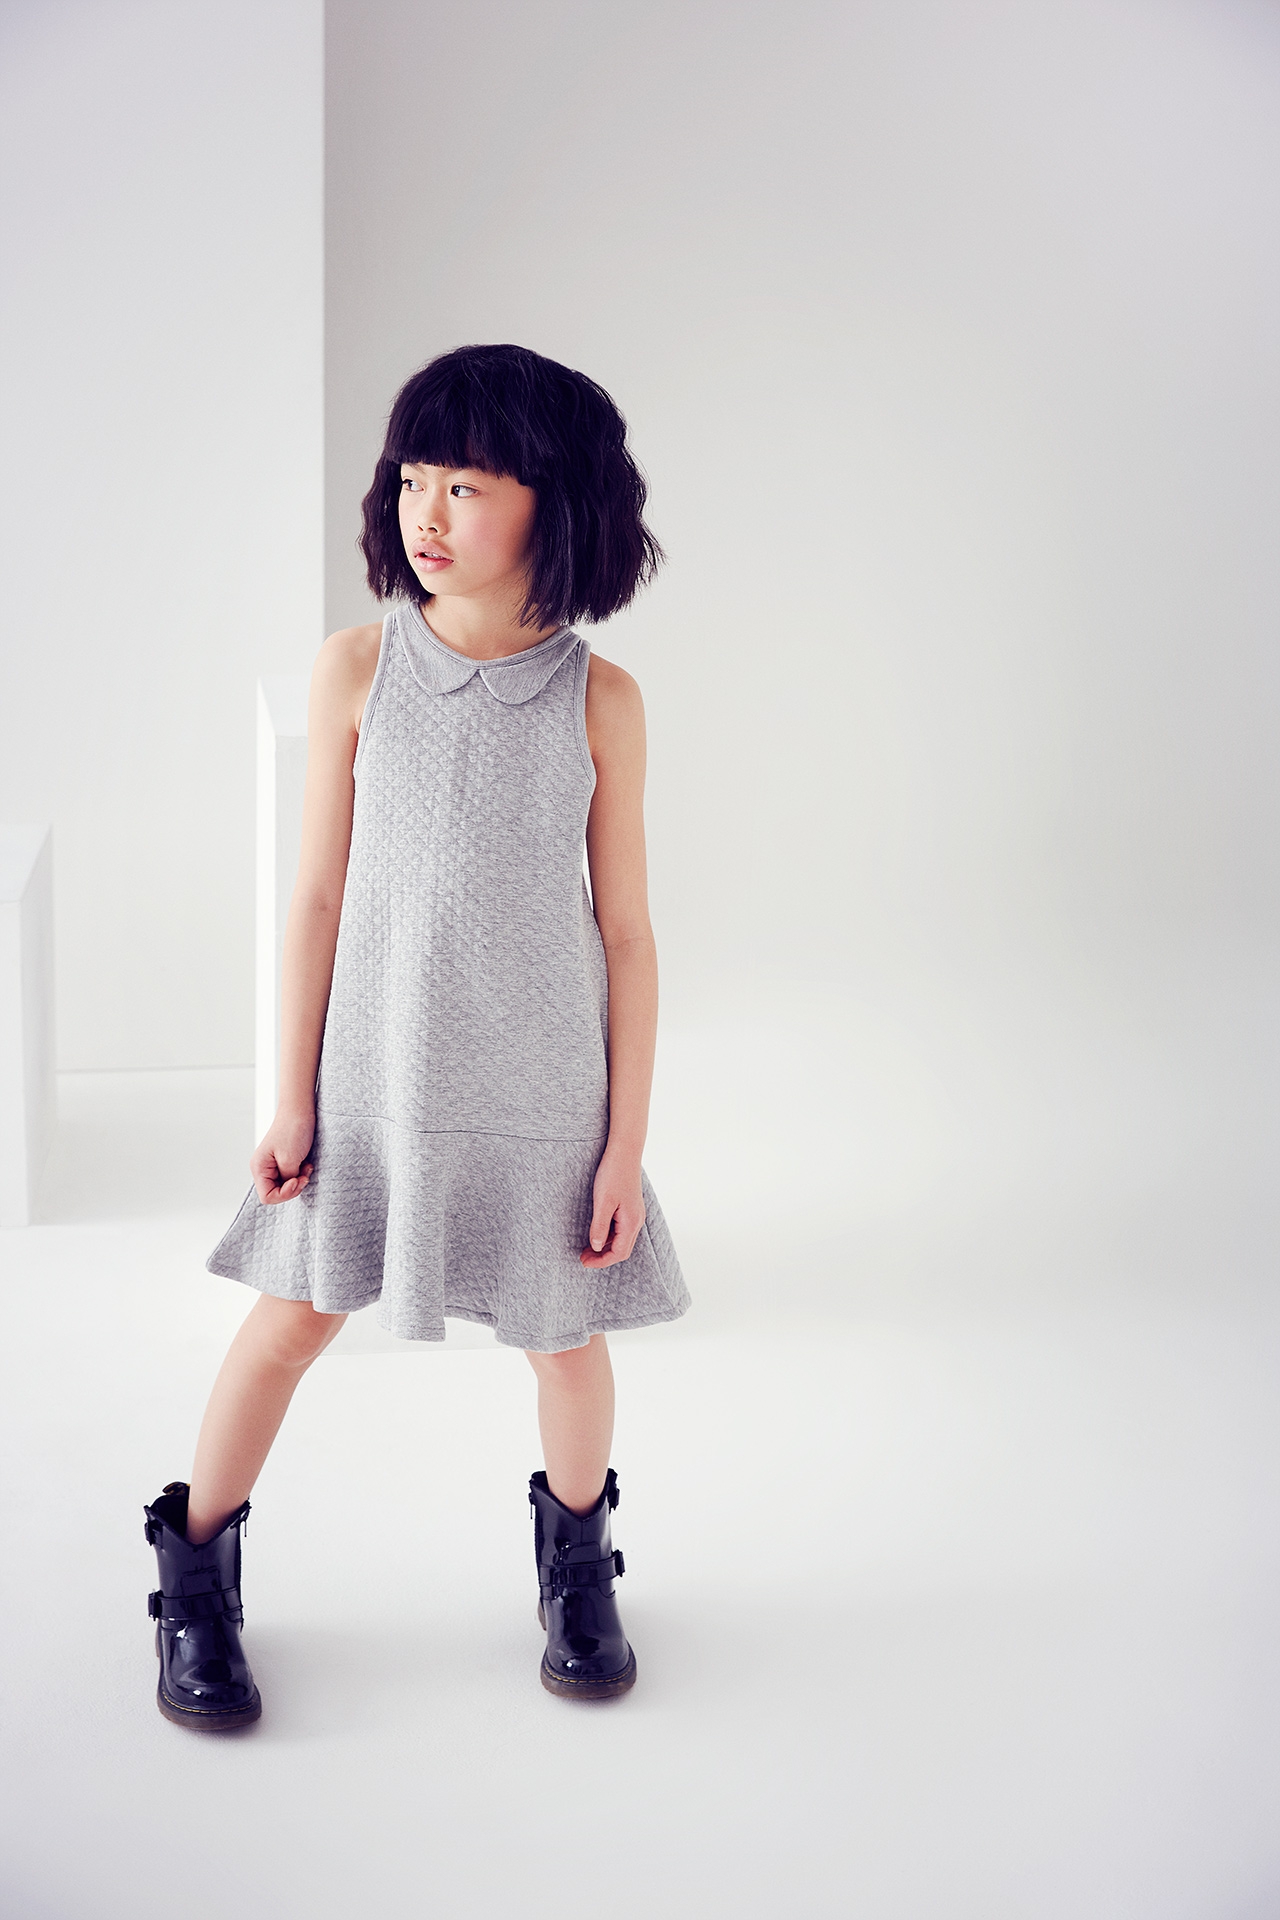 Kids fashion story monochrome girl